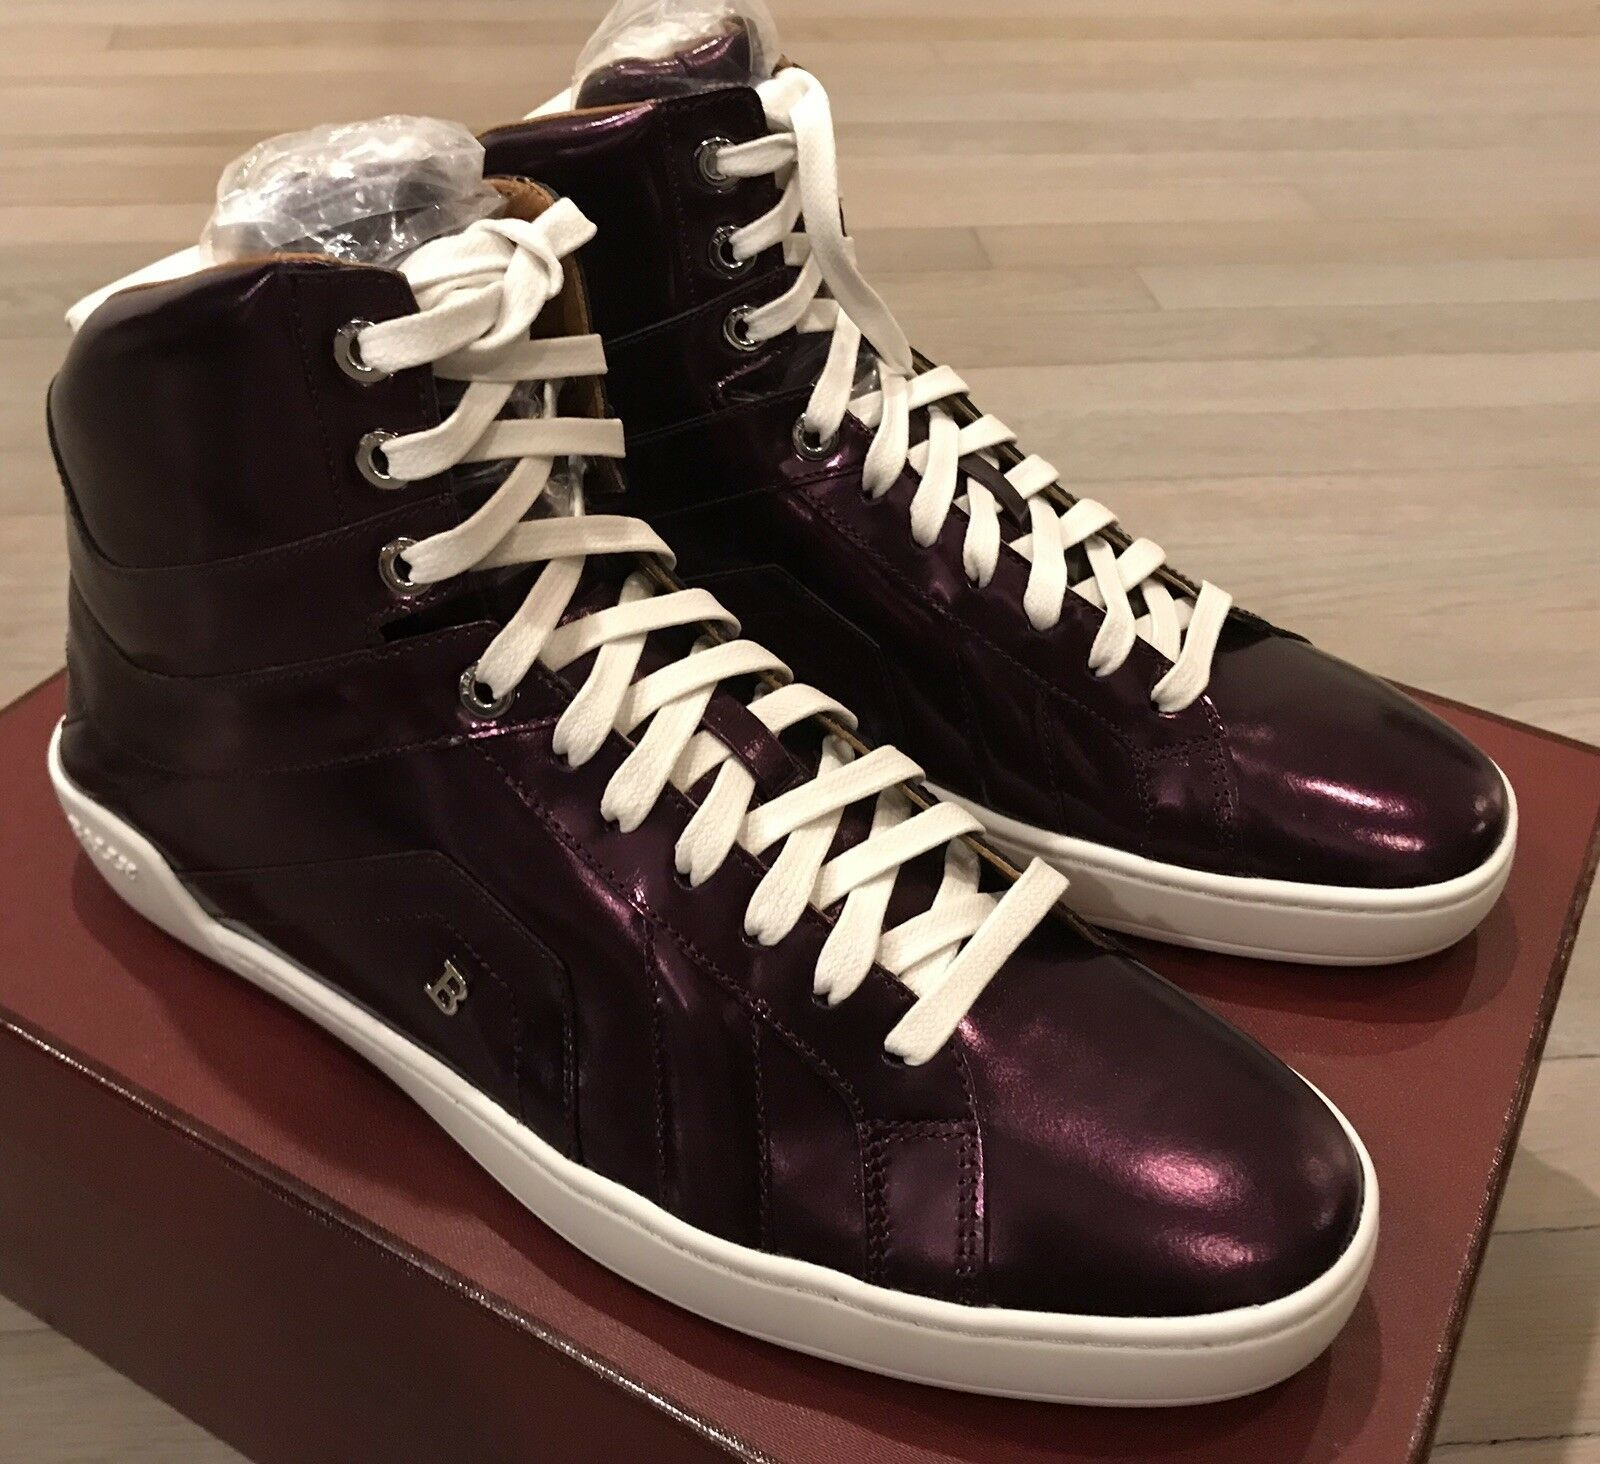 700  Bally Eticon 103 Purple Metallic Leather High Tops Sneakers size US 9